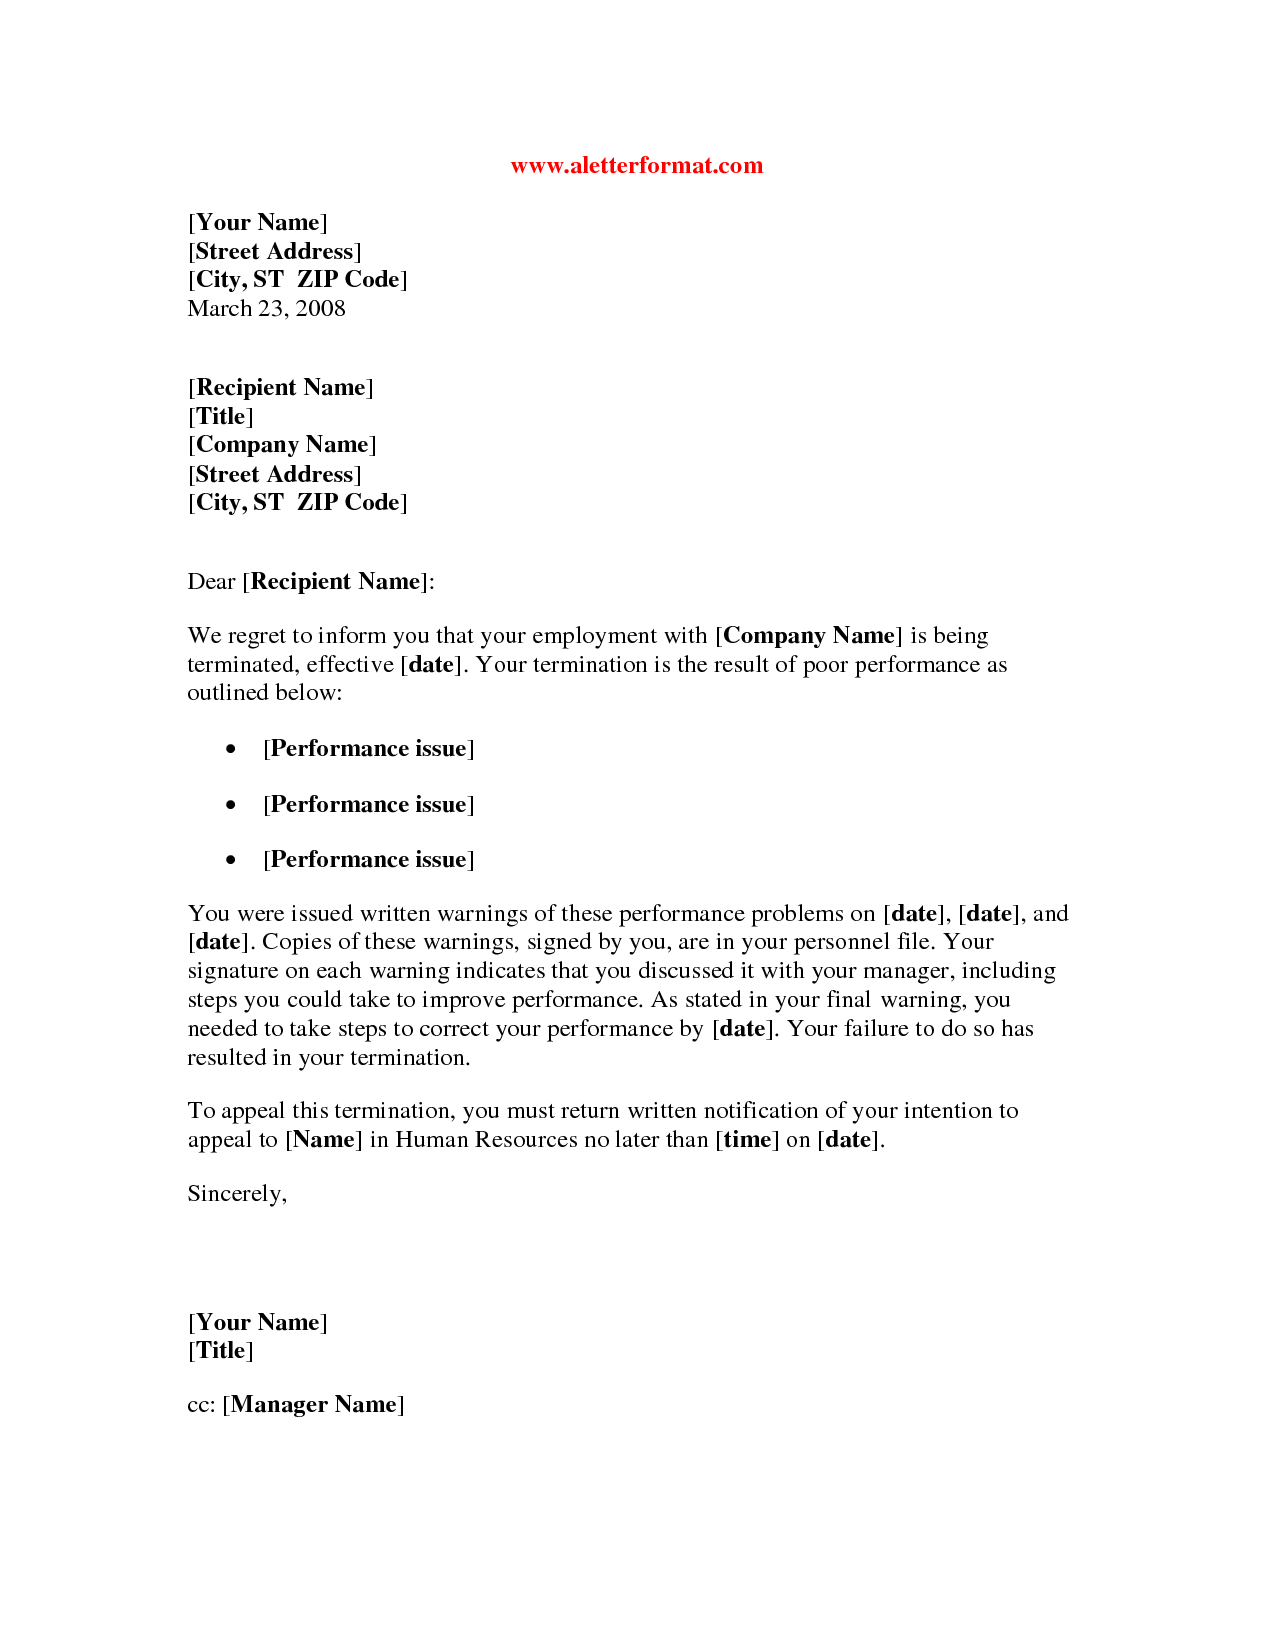 Generic Termination Letter Sample Termination Letter Employee Poor Performance Free Template